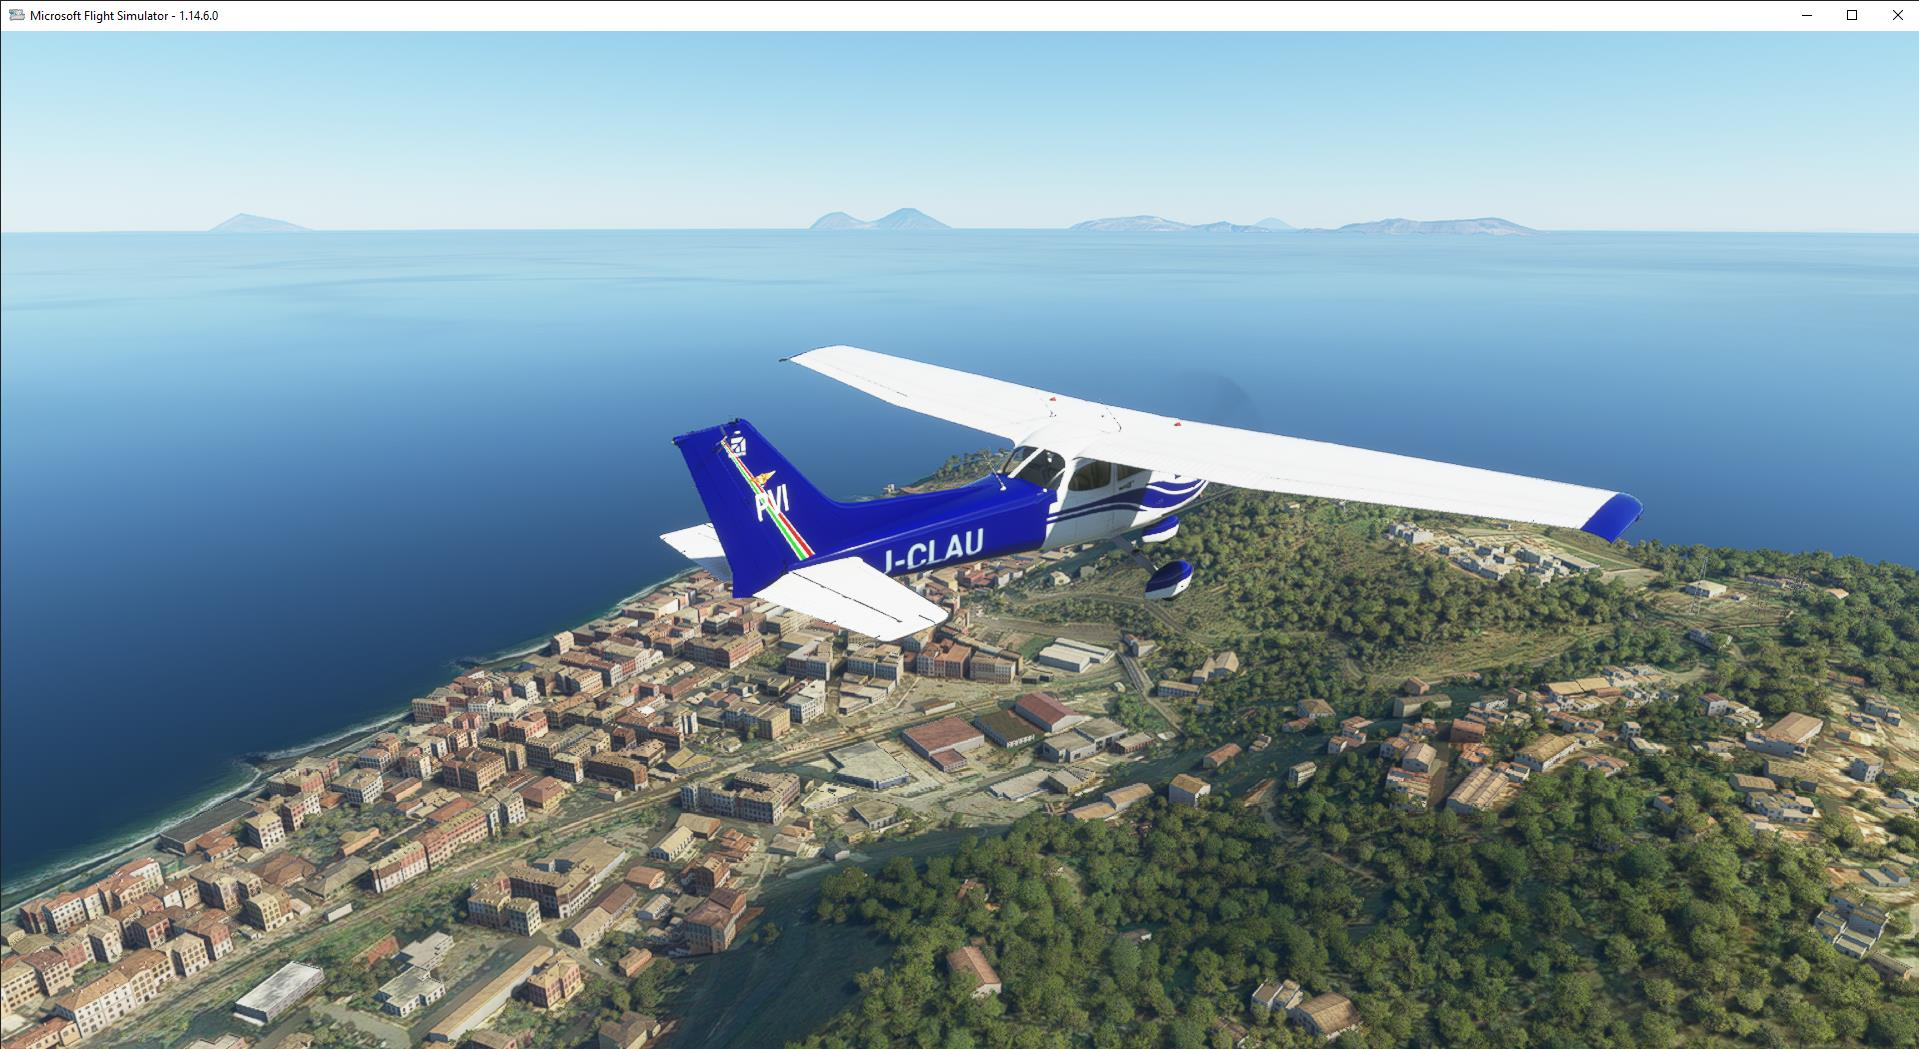 https://vivendobyte.blob.core.windows.net/59034/Microsoft Flight Simulator - 1.14.6.0 05_04_2021 21_43_42.jpg